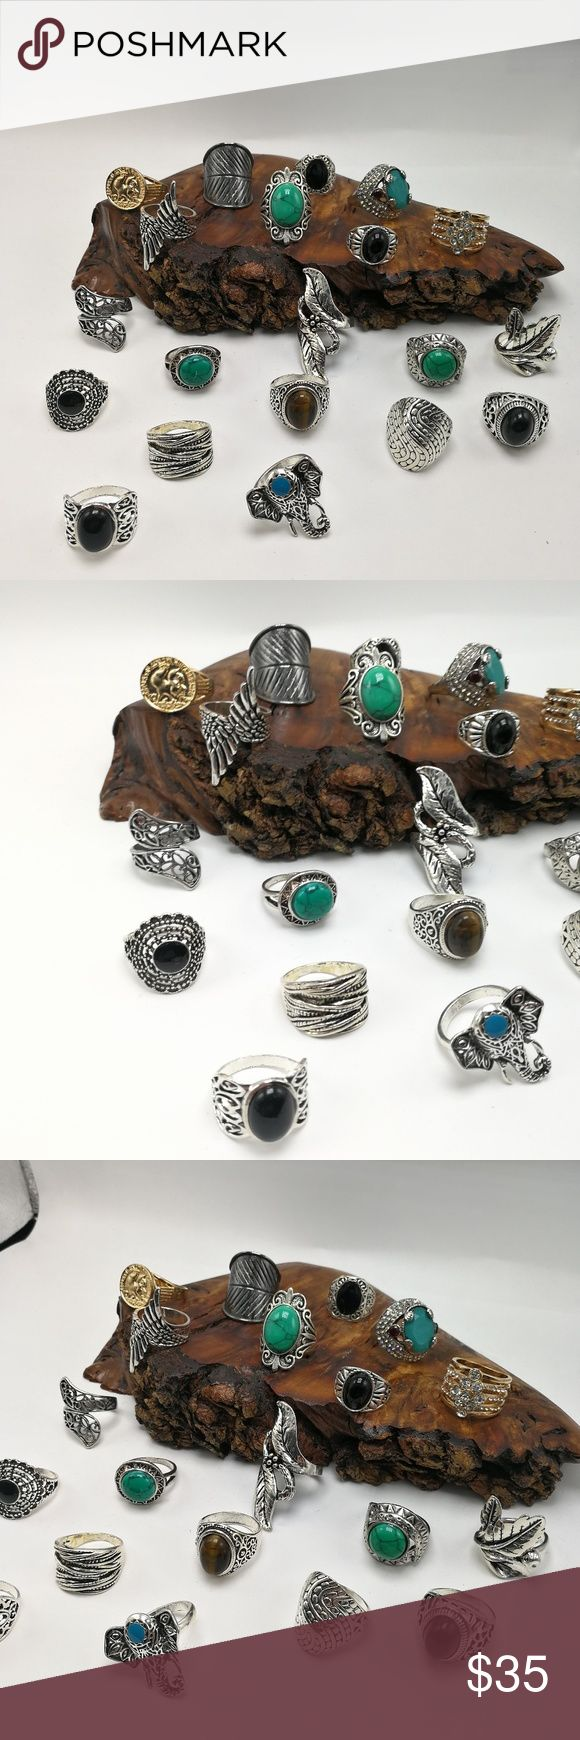 🎄🎅🎄 Bundle 20 rings PLUS Turquoise turkish gems HUGE Bundle 20 Vintage Antiqued Tibet silver Gold rings. Mixed Metals. lead & Nickel free. You will receive ALL the items shown. NOT sold individually. Not sold in a smaller bundle size. NO exceptions. No holds or trades. Price is firm. Display is NFS. Bundle to SAVE. Great for Resale! Size:9/10 RB#262 PLUS SIZE Jewelry Rings